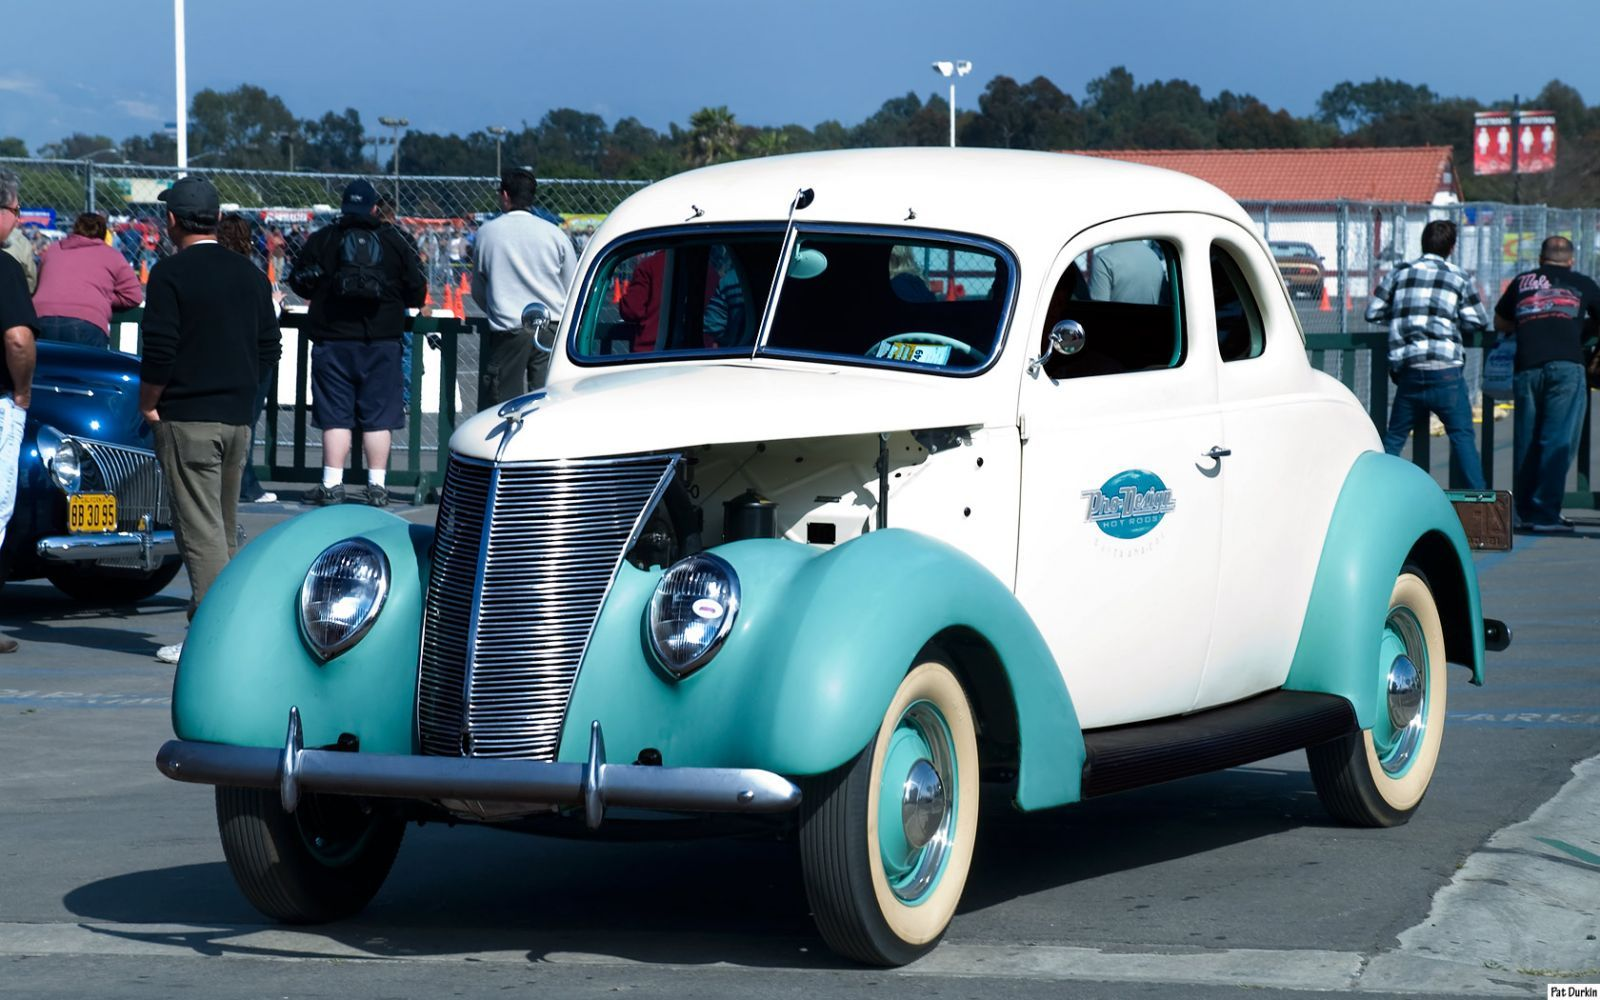 1937 Ford Coupe - fvl